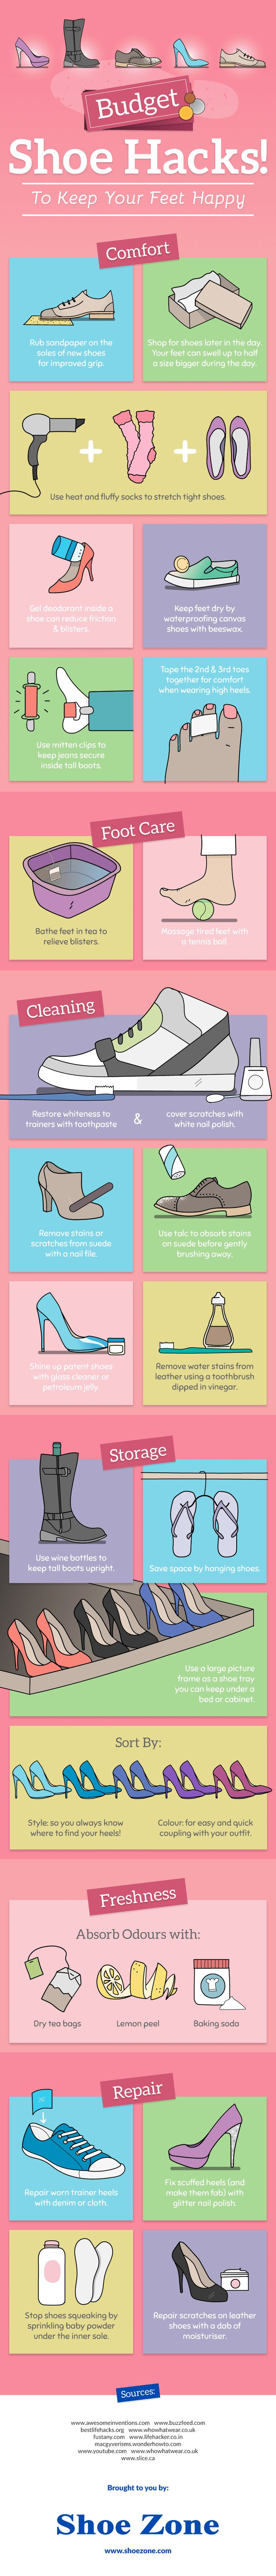 Simple budget shoe hacks infographic